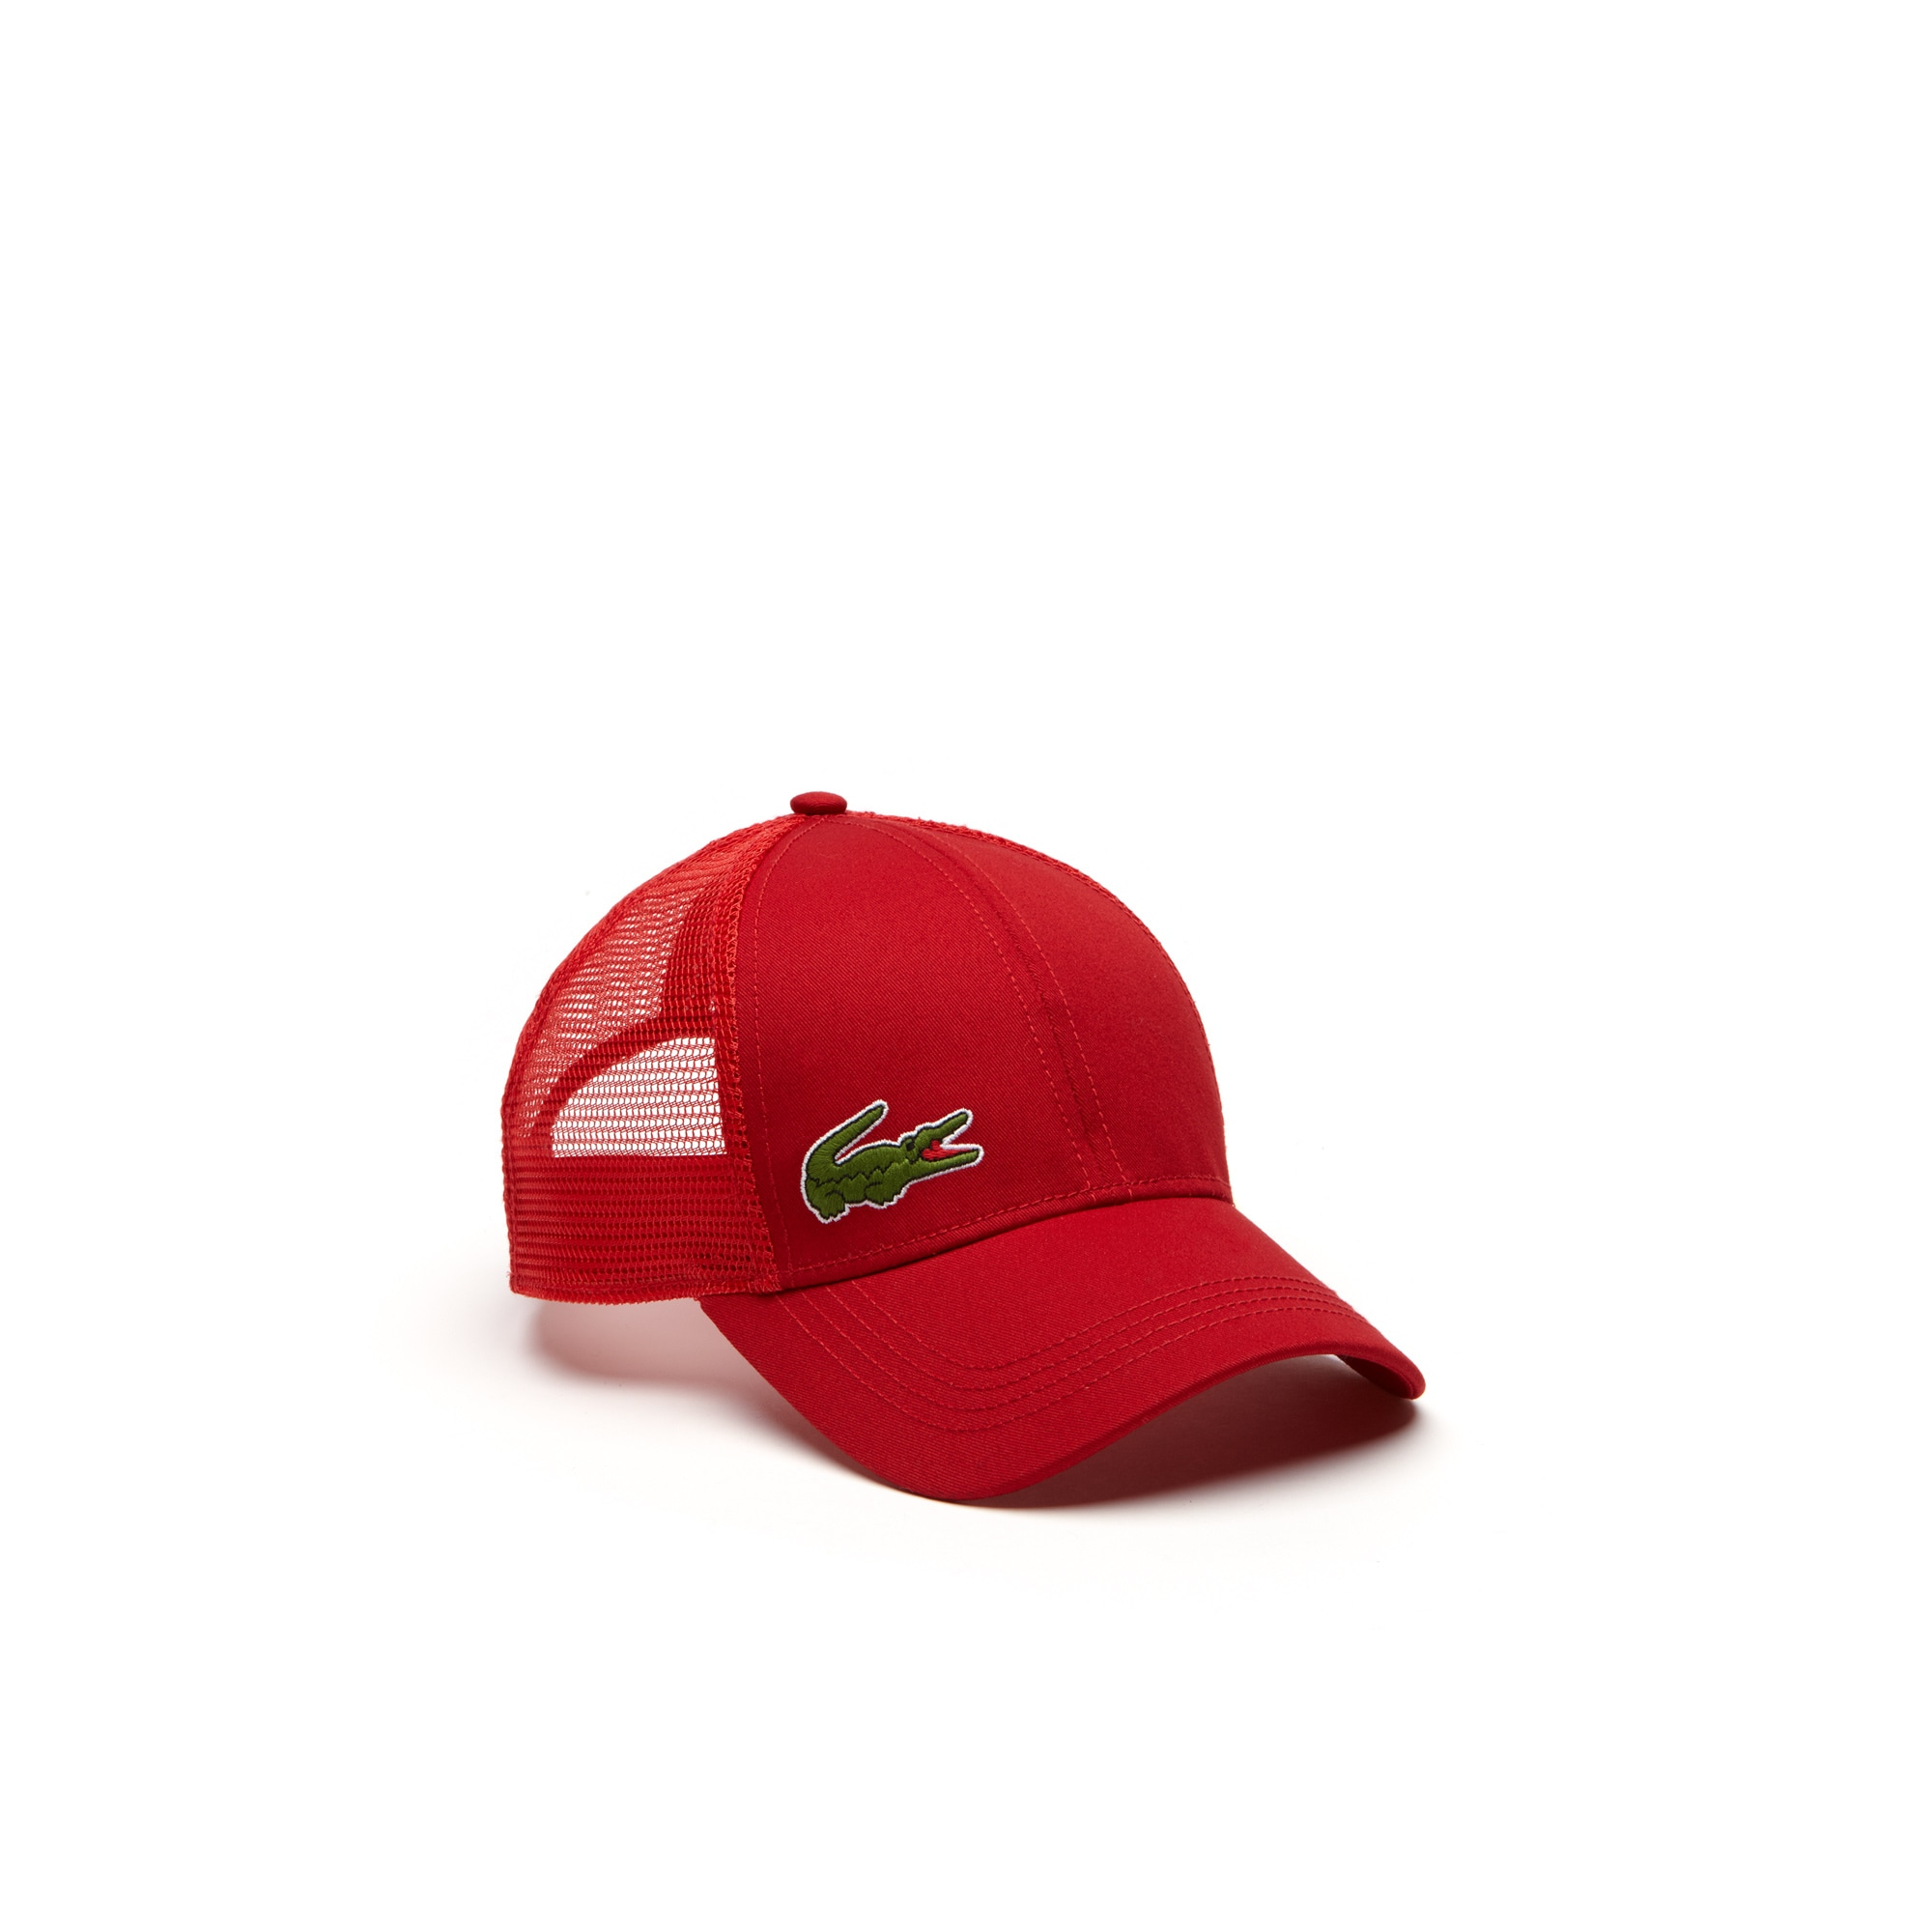 MEN'S TRUCKER CAP